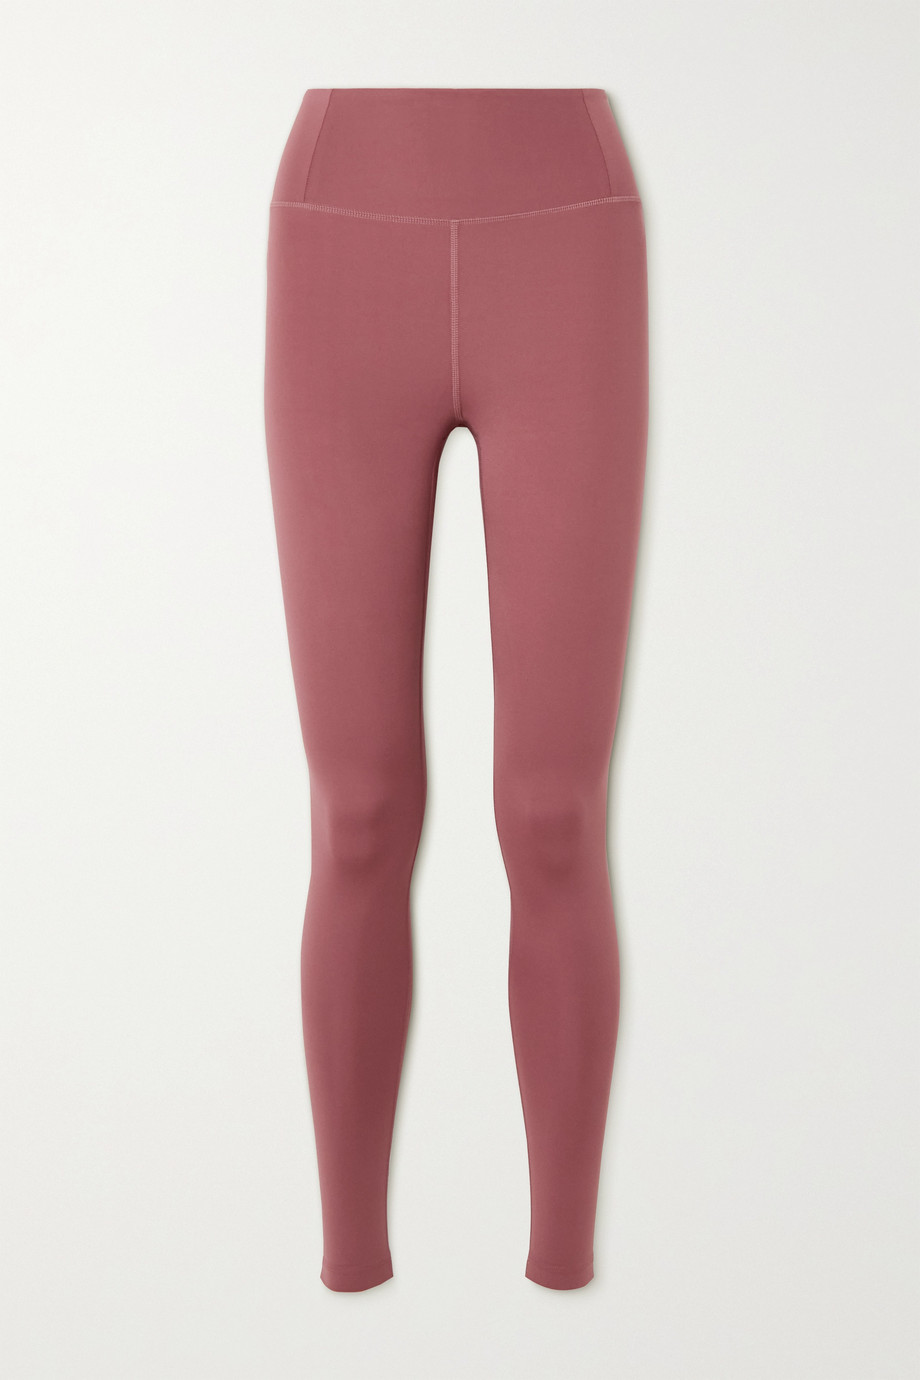 Girlfriend Collective + NET SUSTAIN recycled stretch leggings